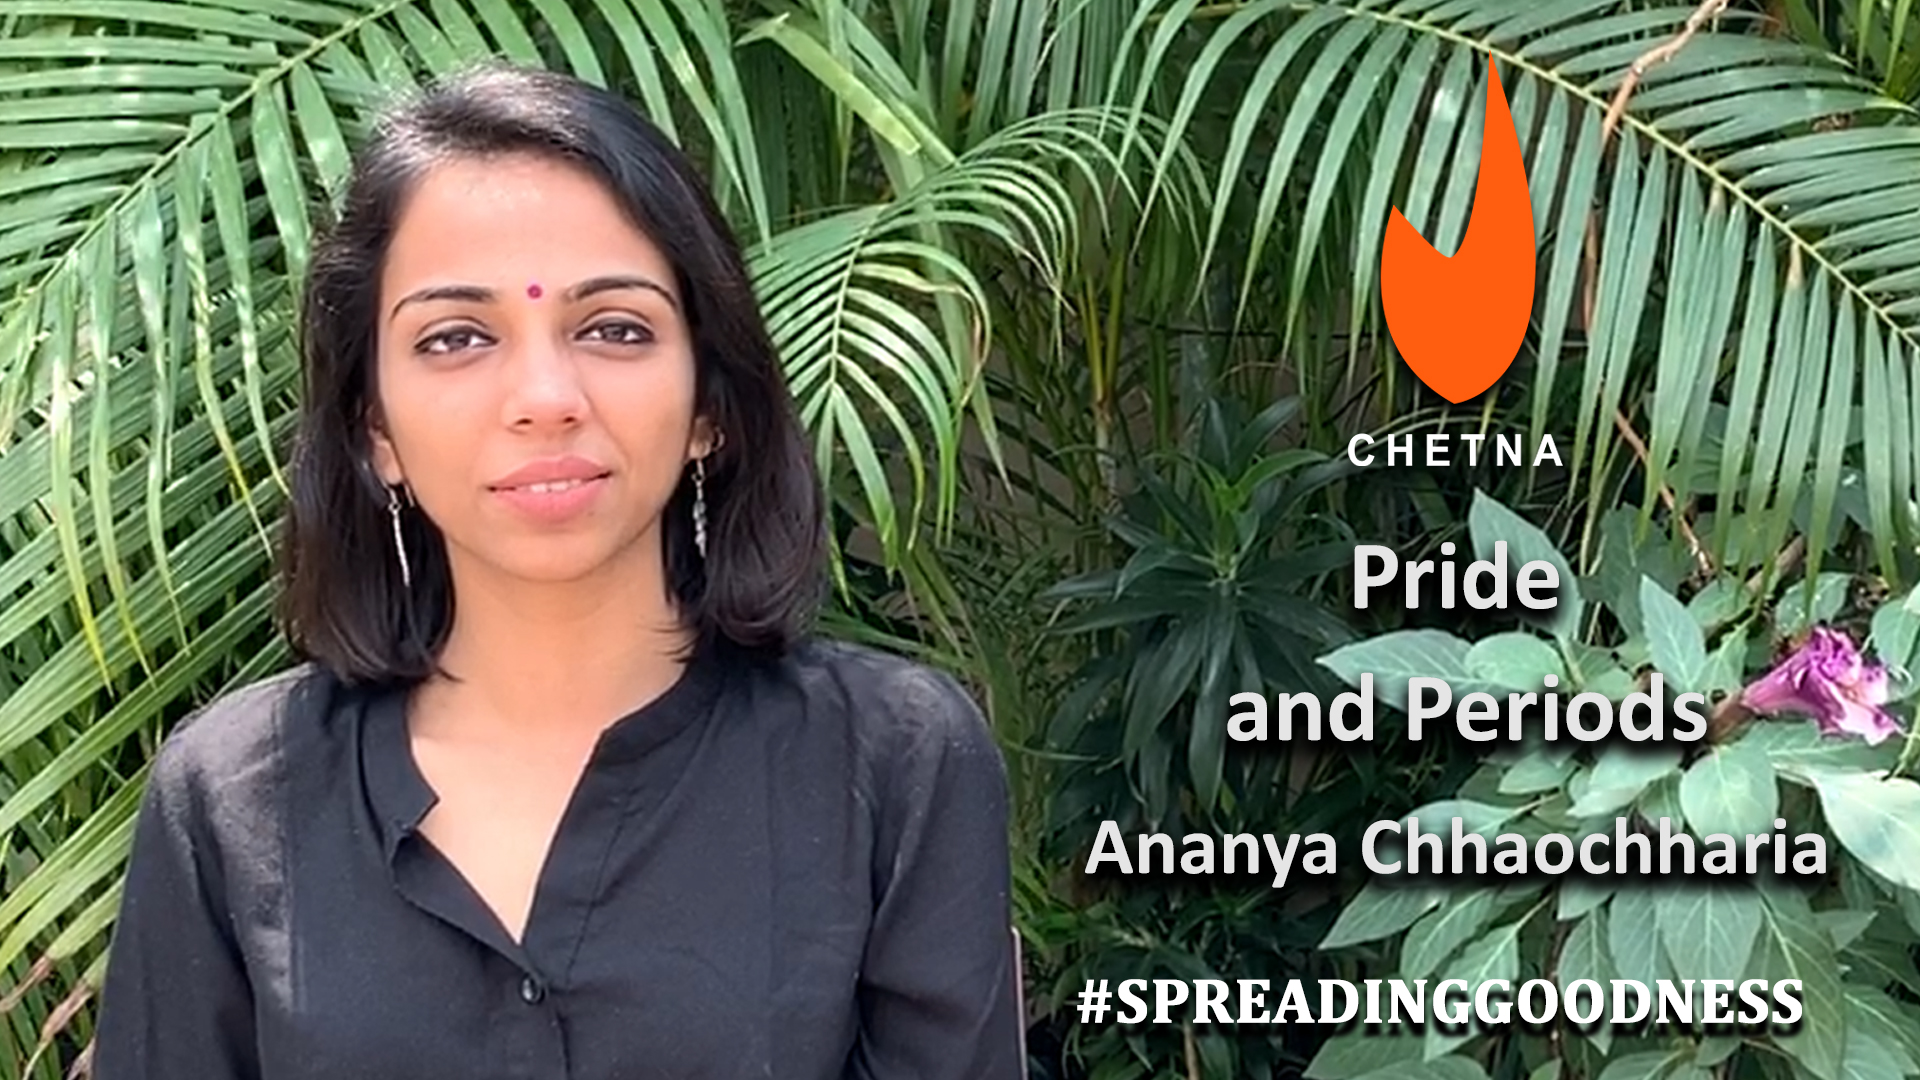 'Pride and Periods' : Ananya Chhaochharia, Paint It Red - Spreading Goodness